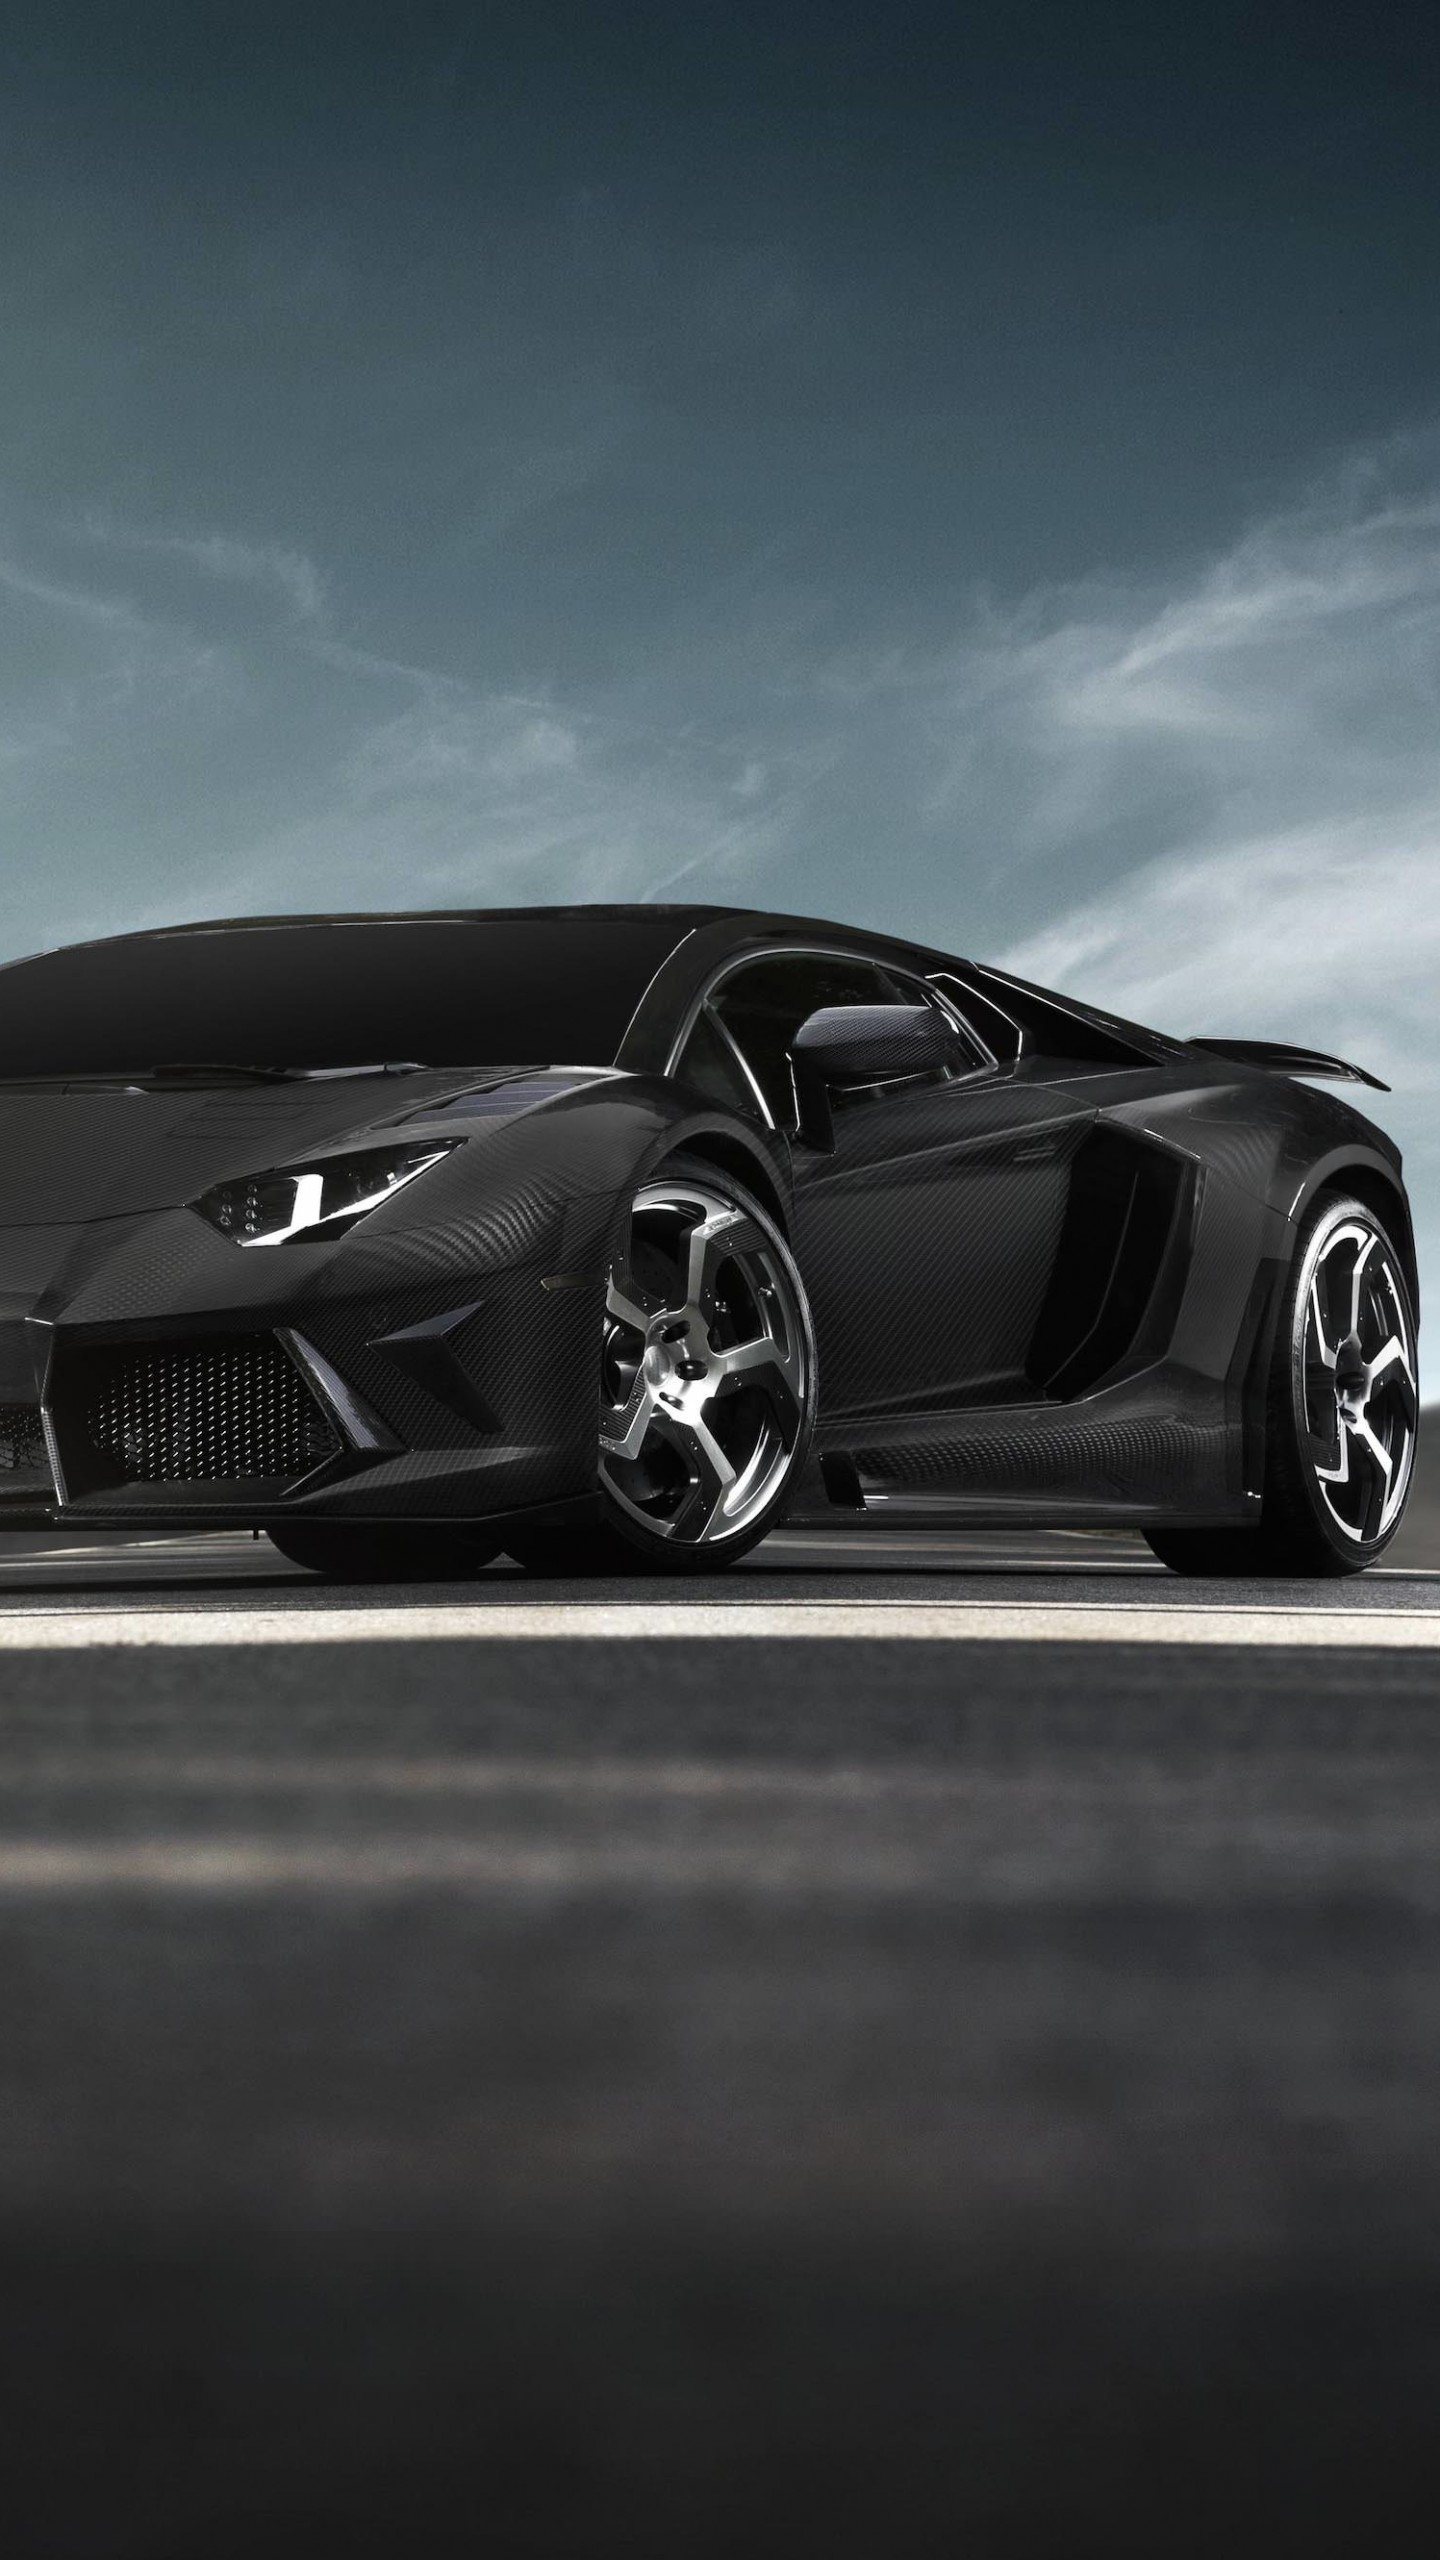 Mansory Carbonado Lamborghini Aventador LP700-4 Wallpaper for Google Nexus 6P